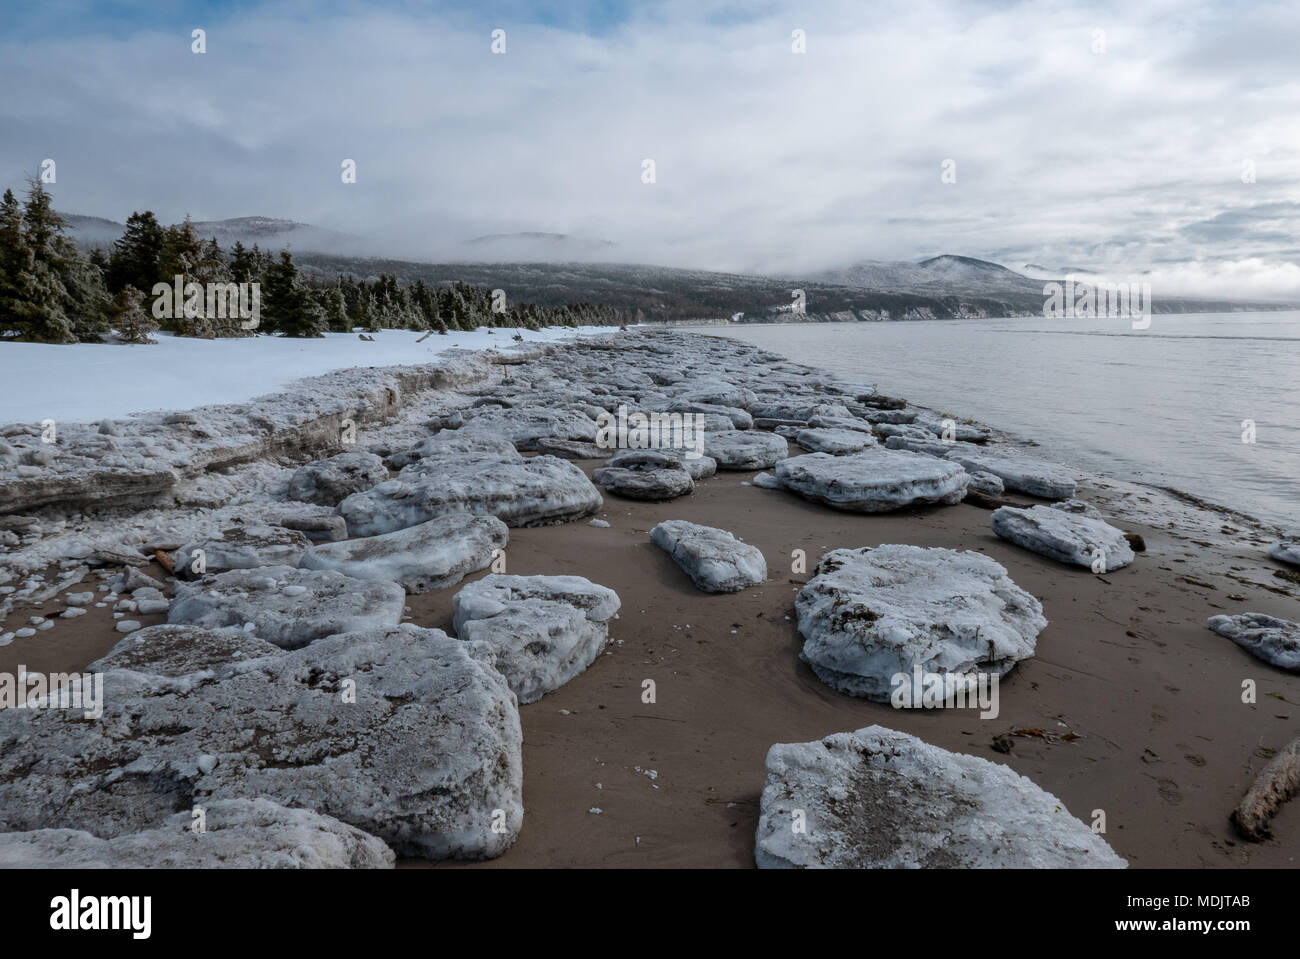 Coastal beach scenery with sea ice breakup during spring thaw. - Stock Image